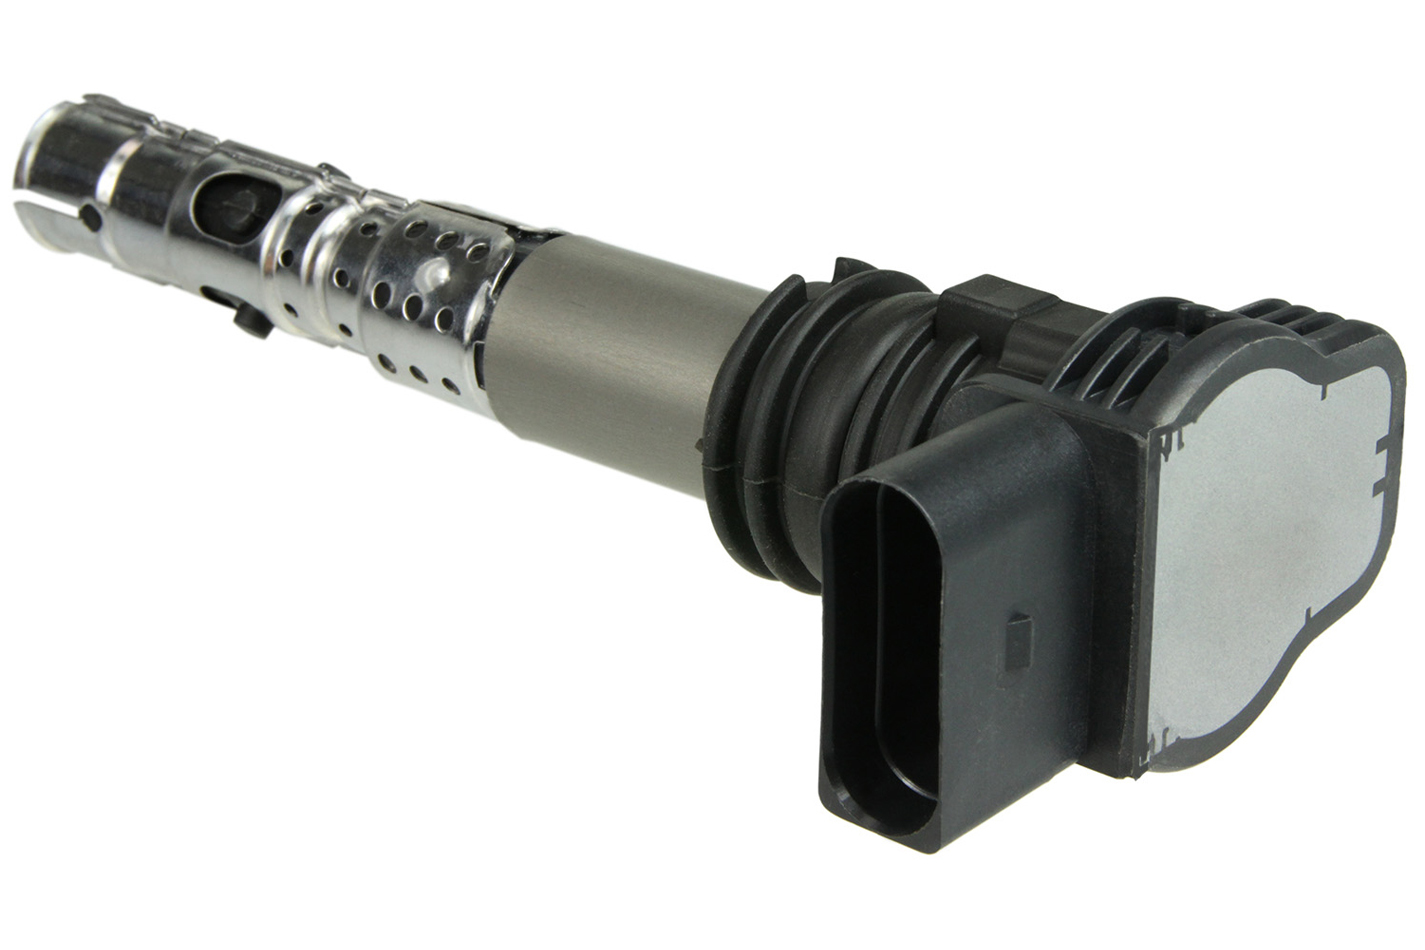 NGK U5003 Ignition Coil Pack, Coil-On-Plug Pencil Spark, OE Specs, Black, Each